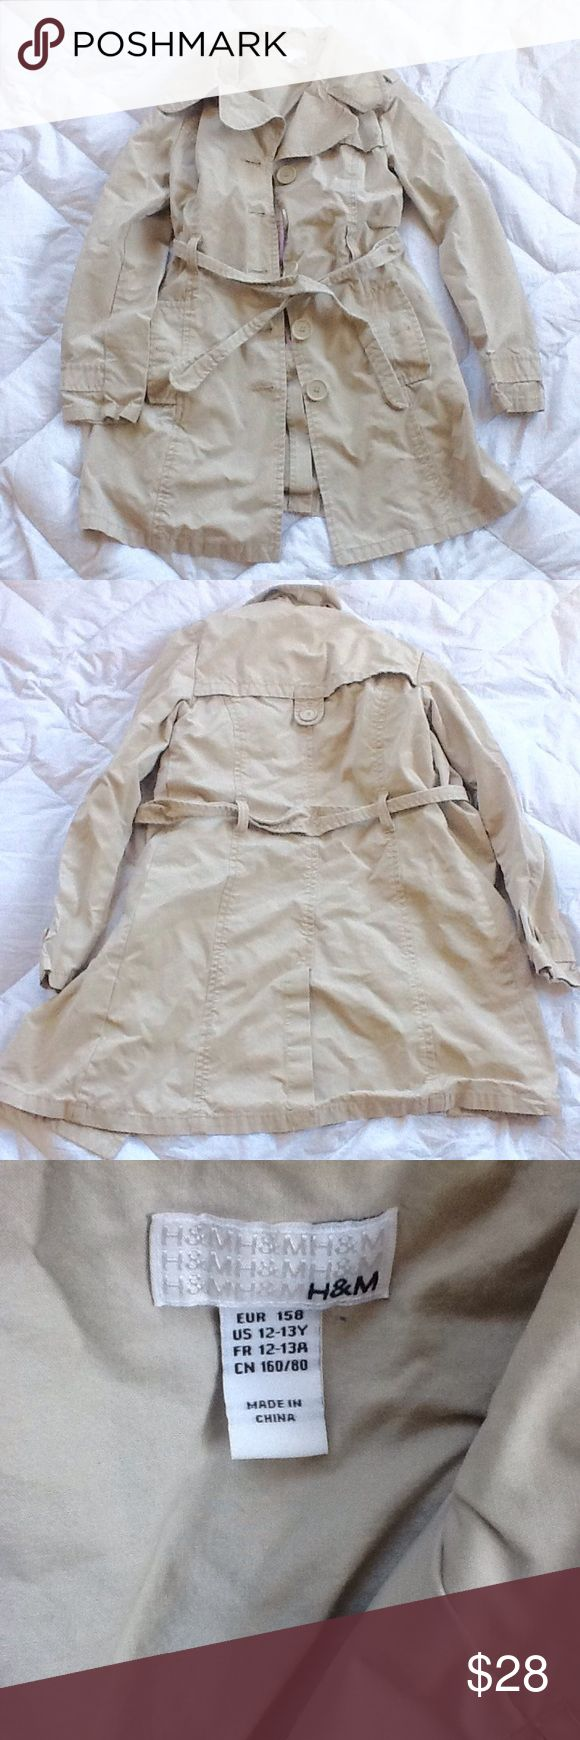 H&M Girls Trench Coat. Tan khaki trench coat. Super cute && comfortable. Perfect for spring and fall. Offers welcome ladies! H&M Jackets & Coats